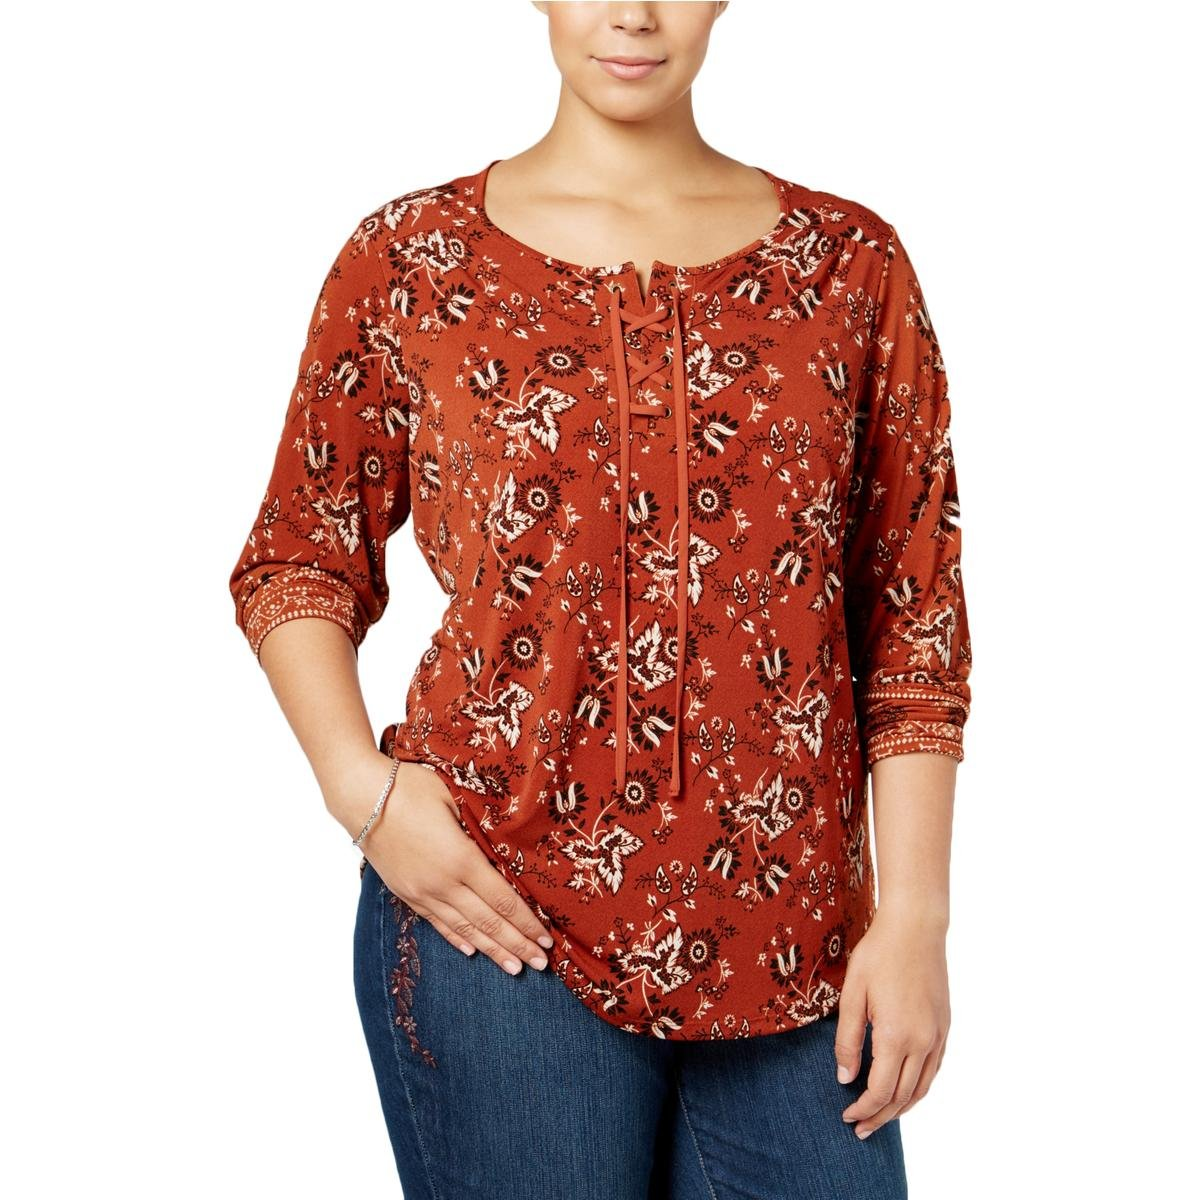 Style & Co. Womens Plus Printed Lace-Up Casual Top Orange 3X